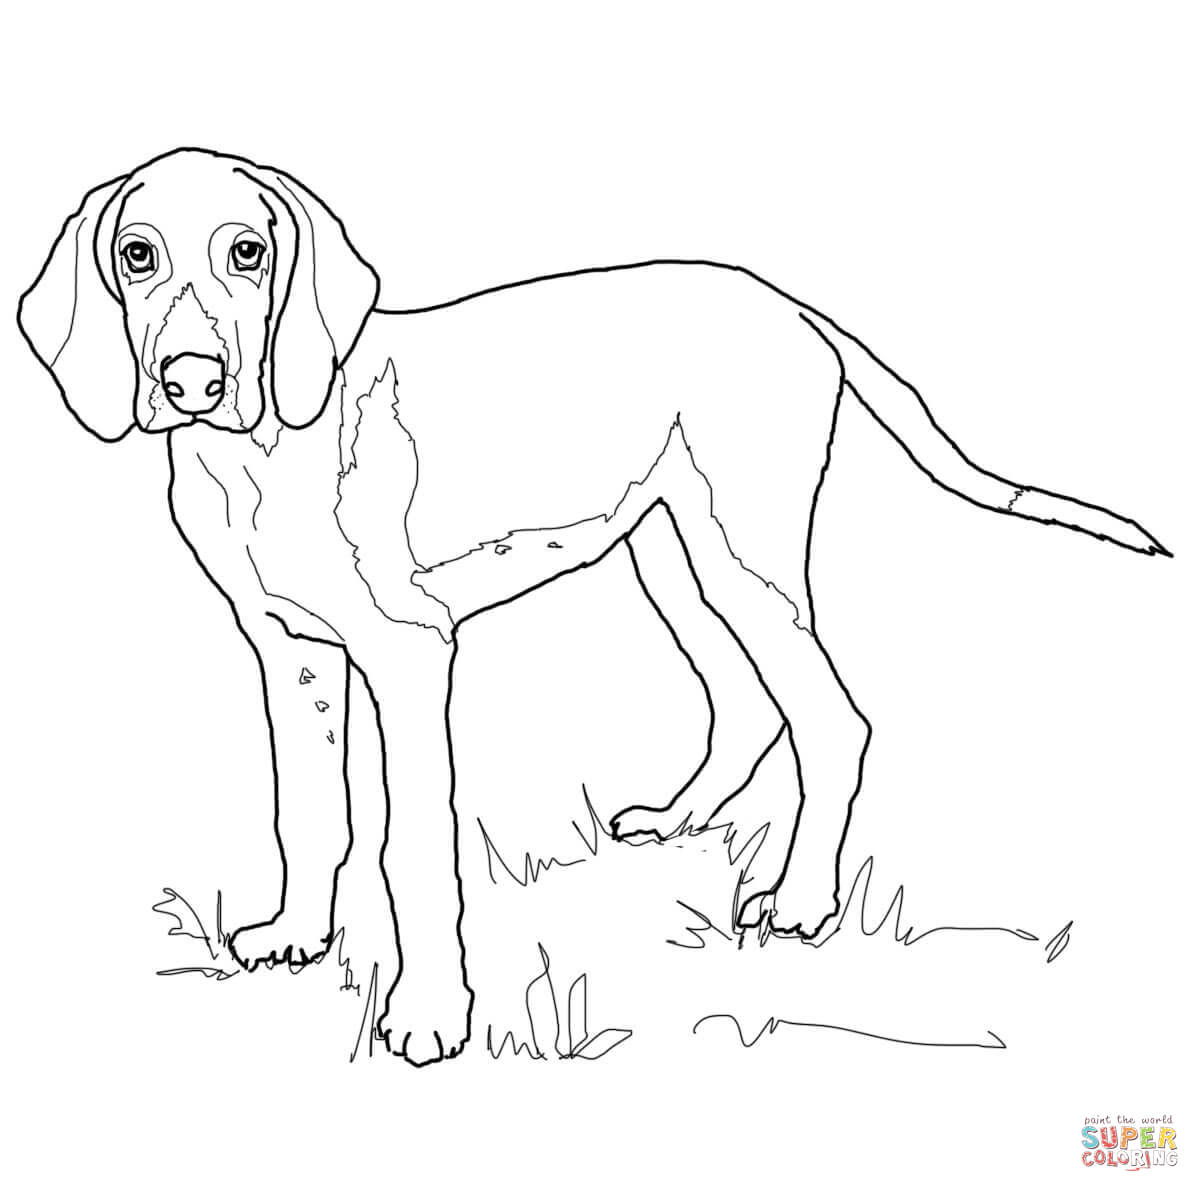 hound dog coloring pages dog coloring pages printable basset hound coloring page hound dog pages coloring